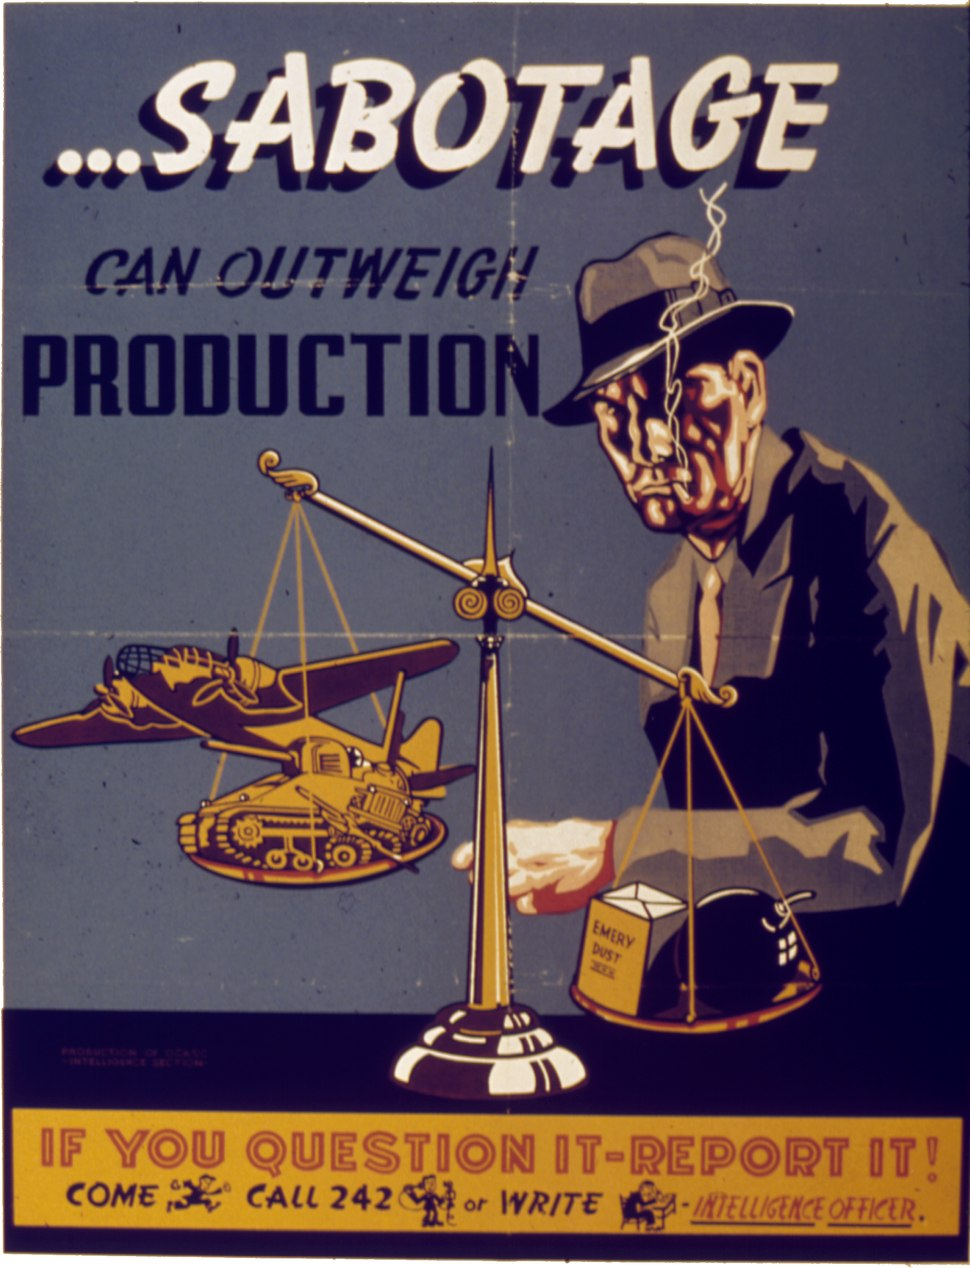 SABOTAGE CAN OUTWEIGH PRODUCTION - NARA - 515321